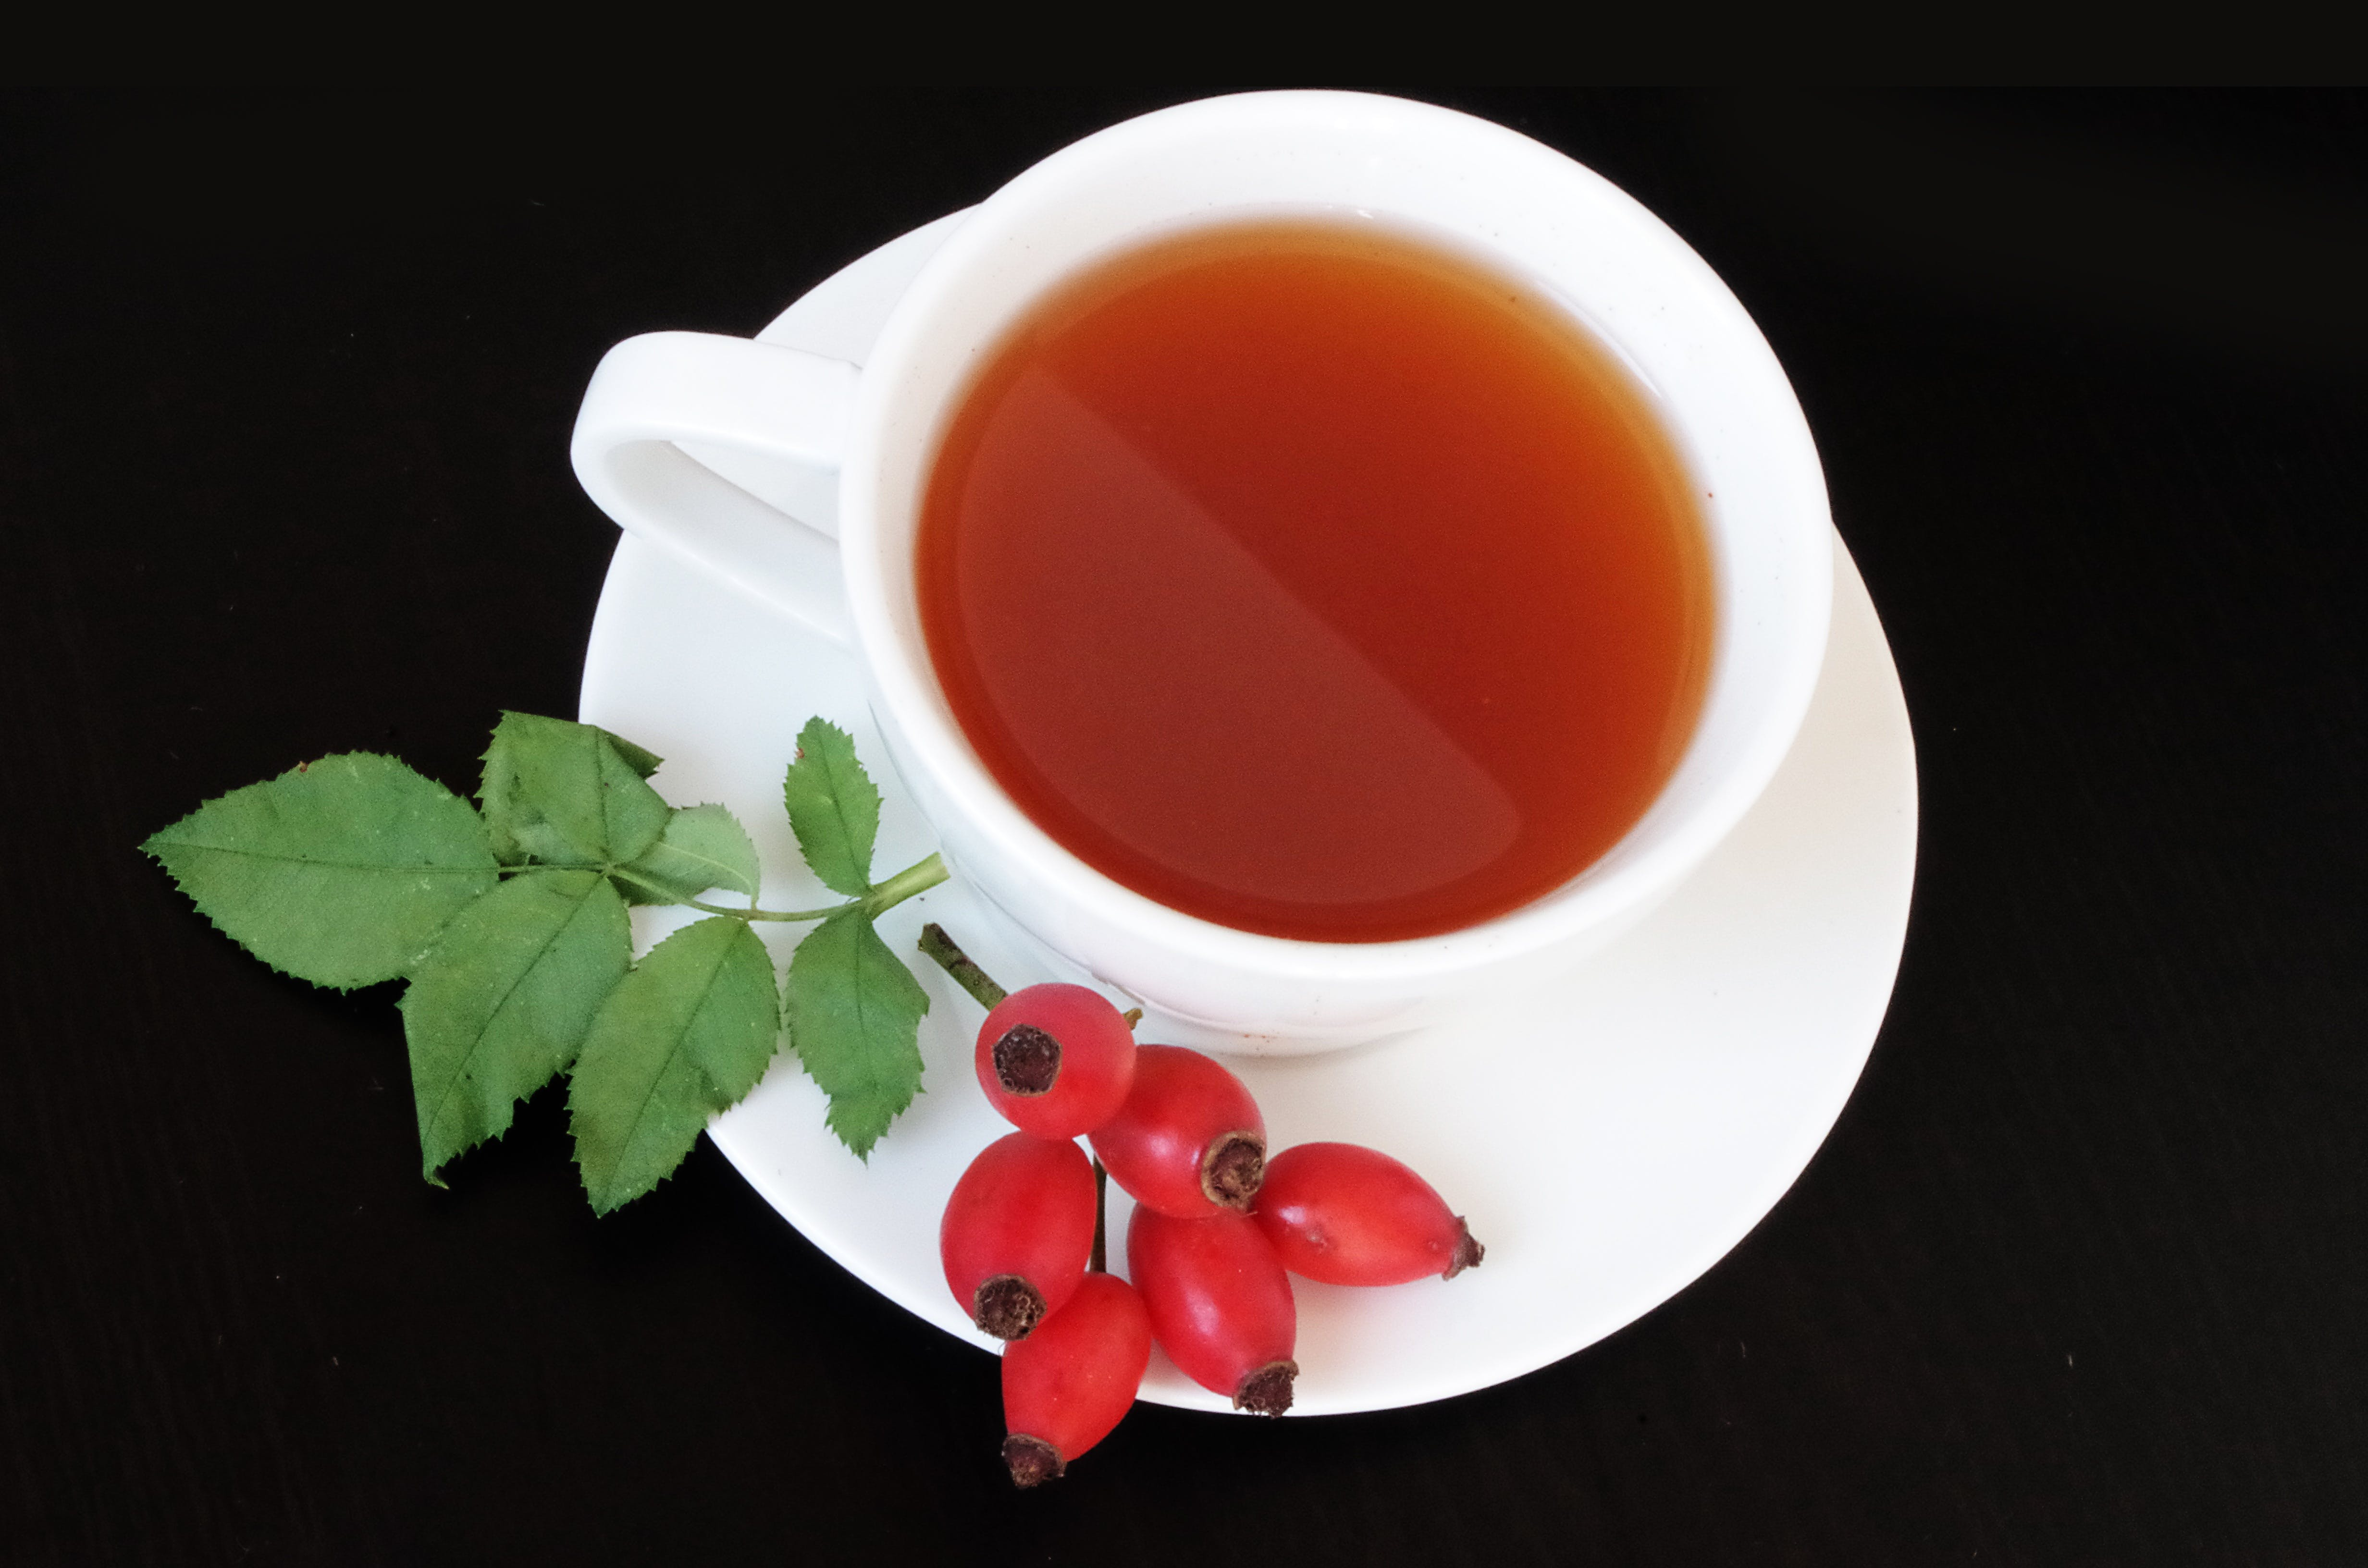 White Teacup With Red Fruits Beside